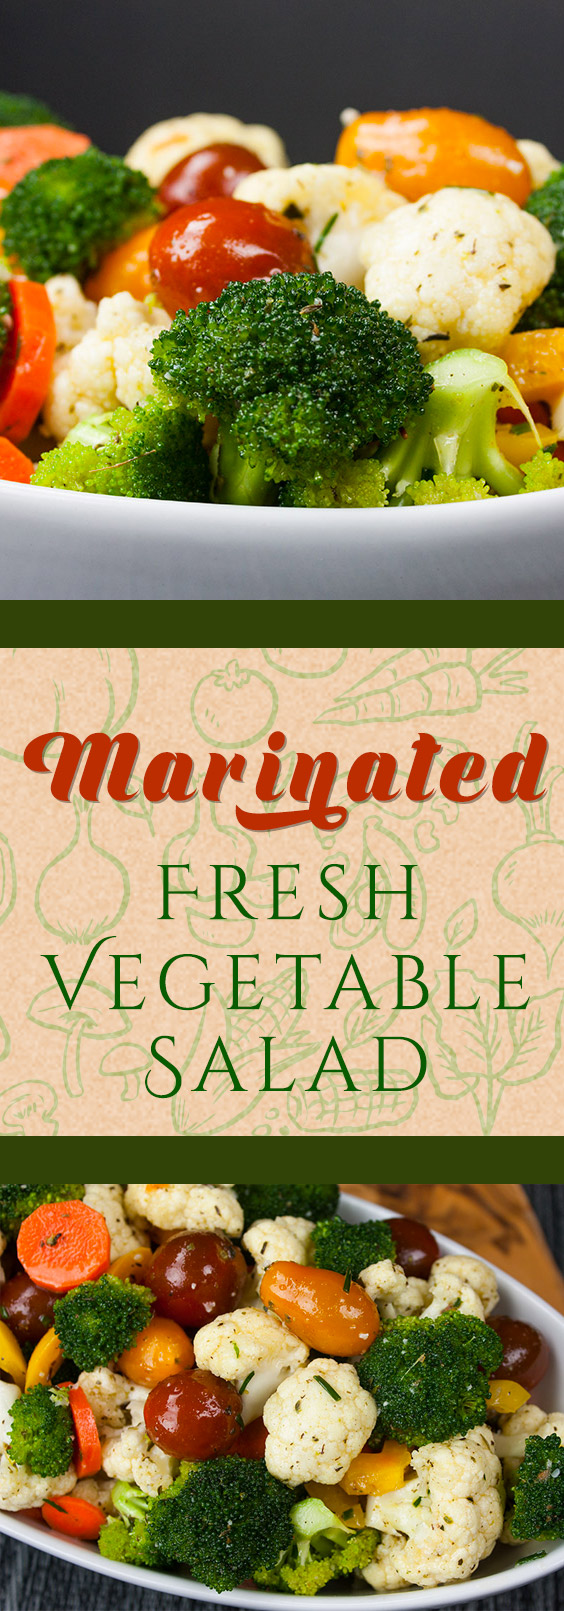 Tasty Healthy Marinated Fresh Vegetable Salad - Quick and easy to make-ahead! Healthy, crunchy, fresh vegetables tossed in a vinaigrette make this salad recipe ideal for your 4th of July gathering.